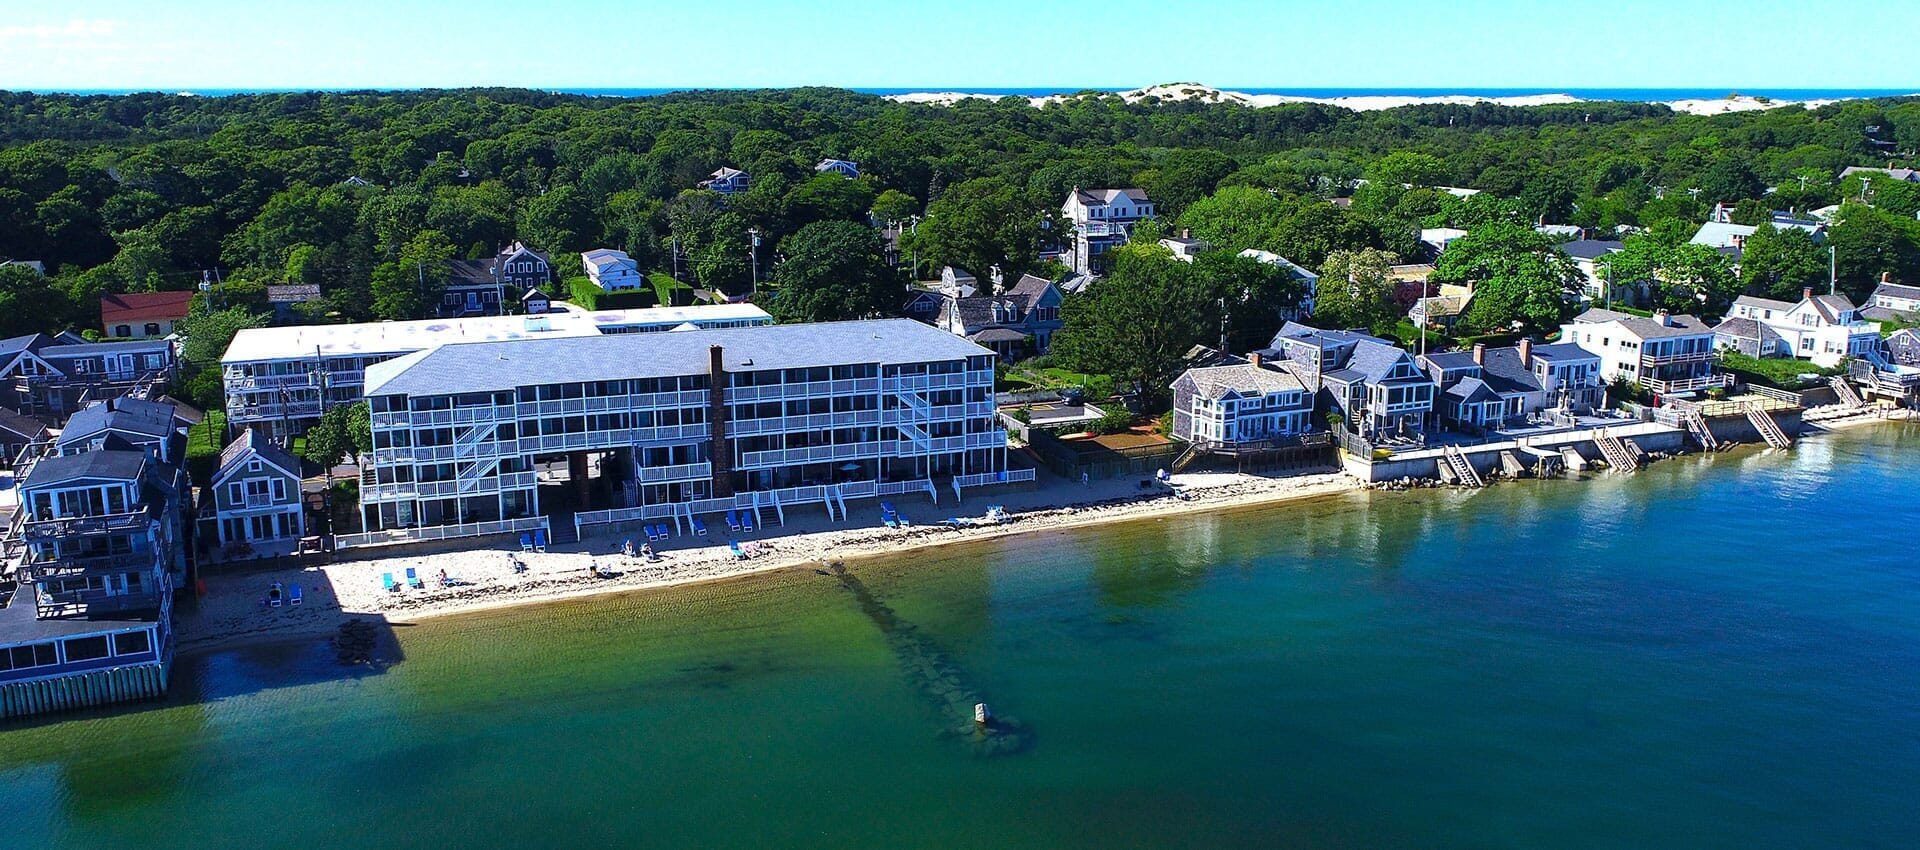 Surfside hotel and suites provincetown, massachusetts